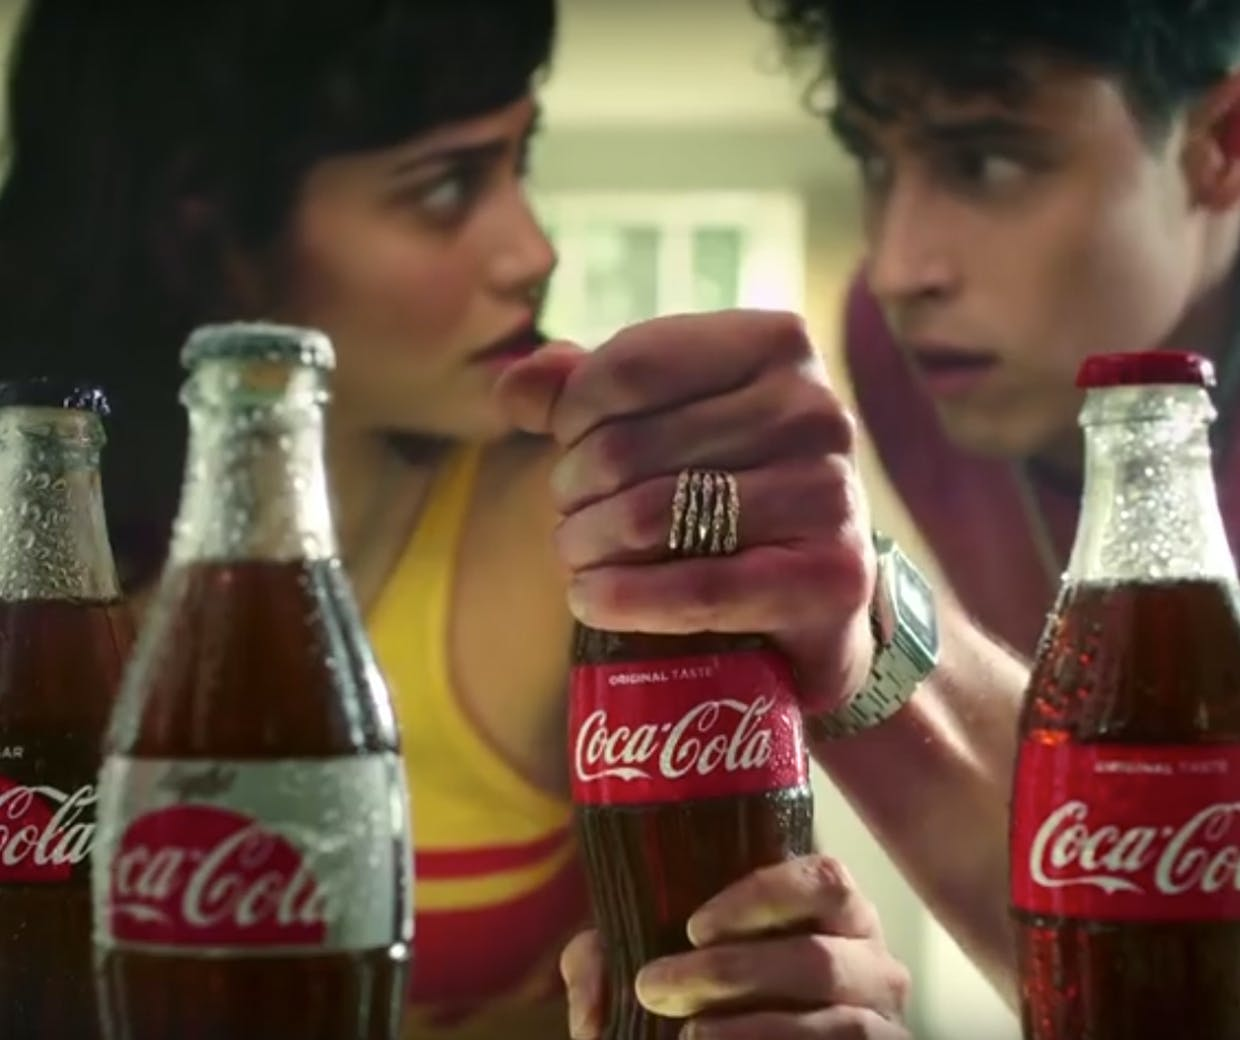 Coca-Cola prepares to launch ready-to-drink Costa product in 'coming weeks'